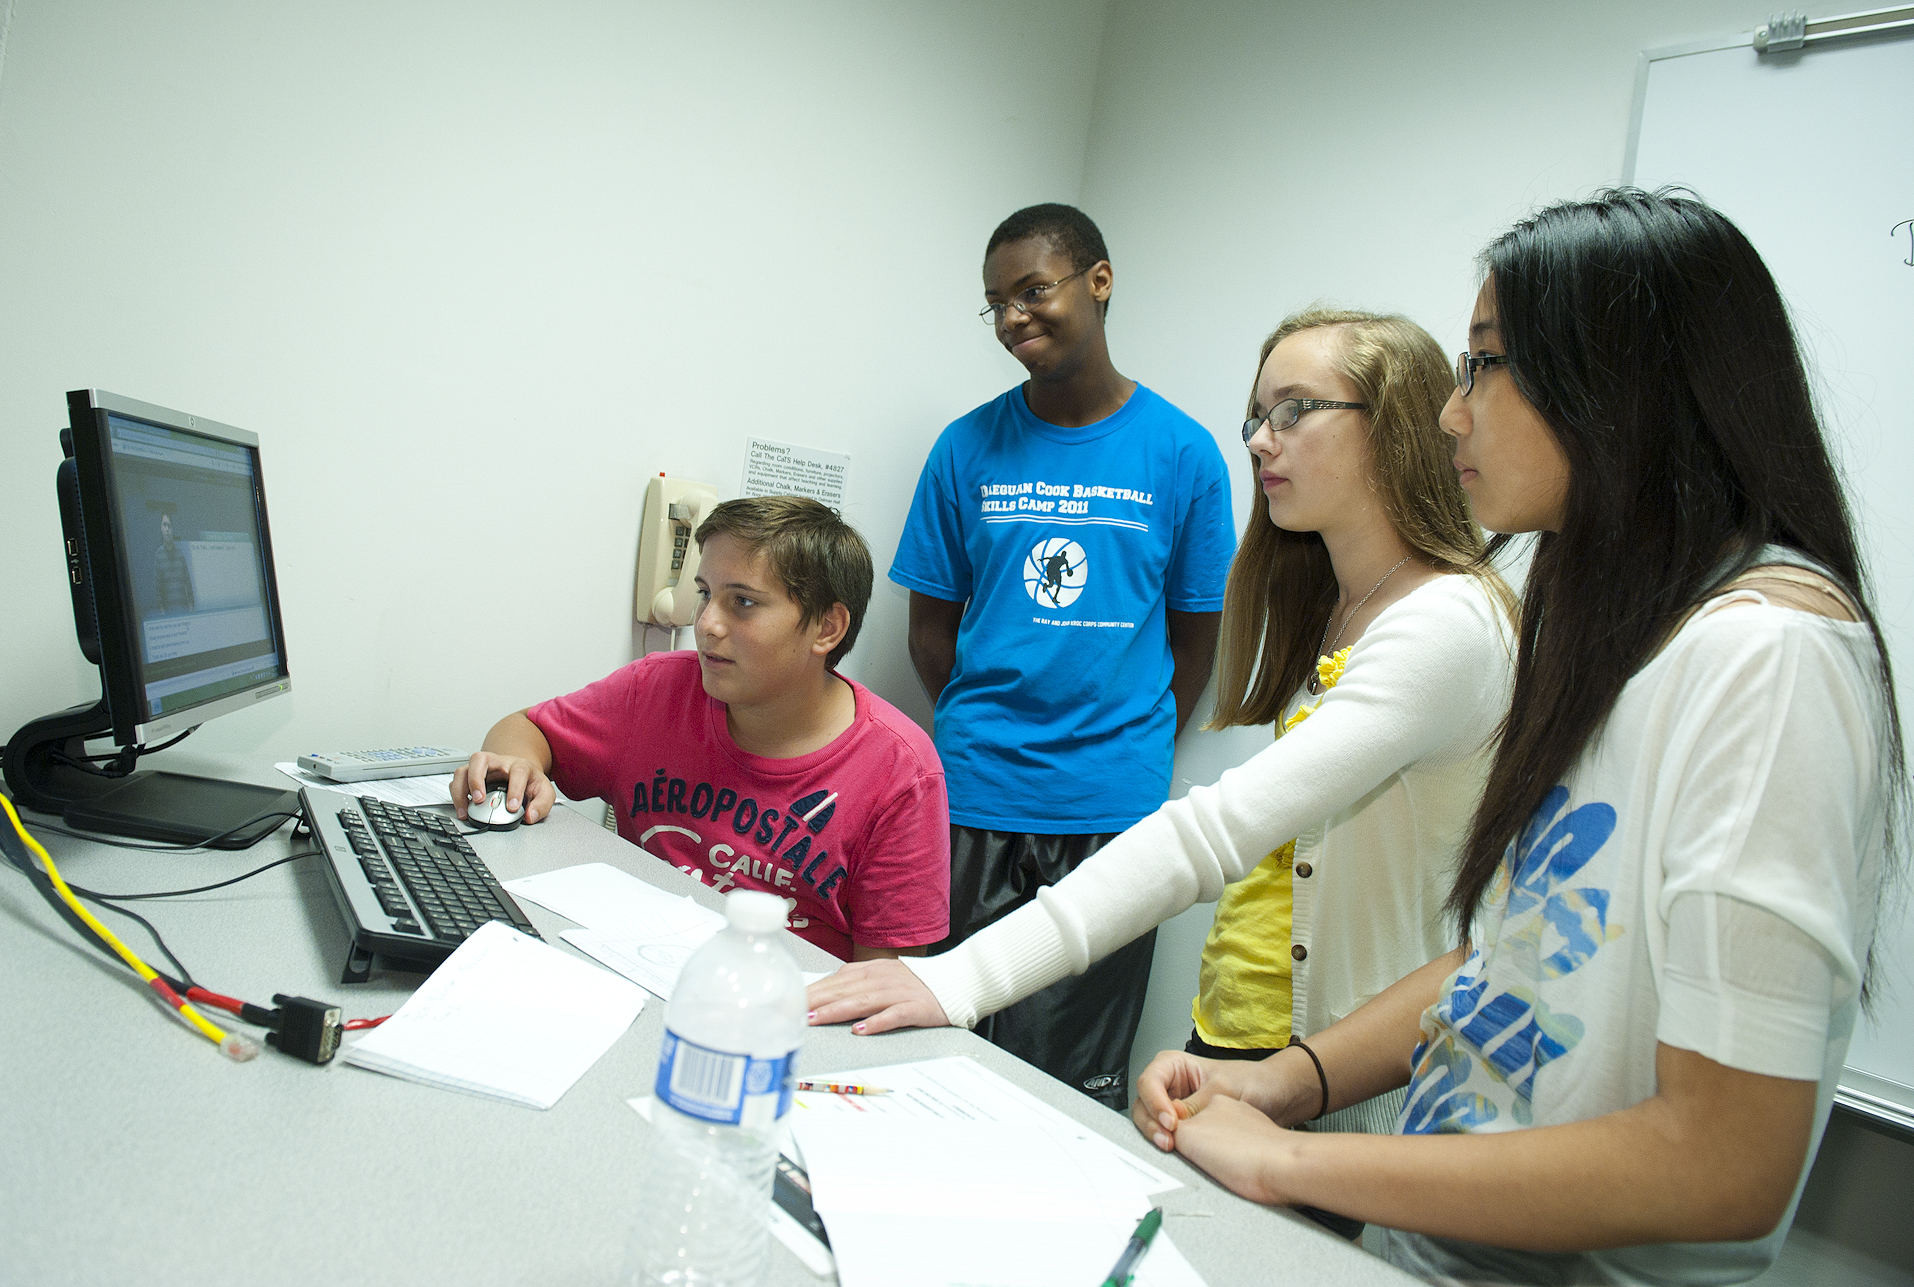 Photo of Collin Clark, Josh McLean, Tristan Pant and Kristine Kim using software to solve a crime in Forensic Analysis camp.